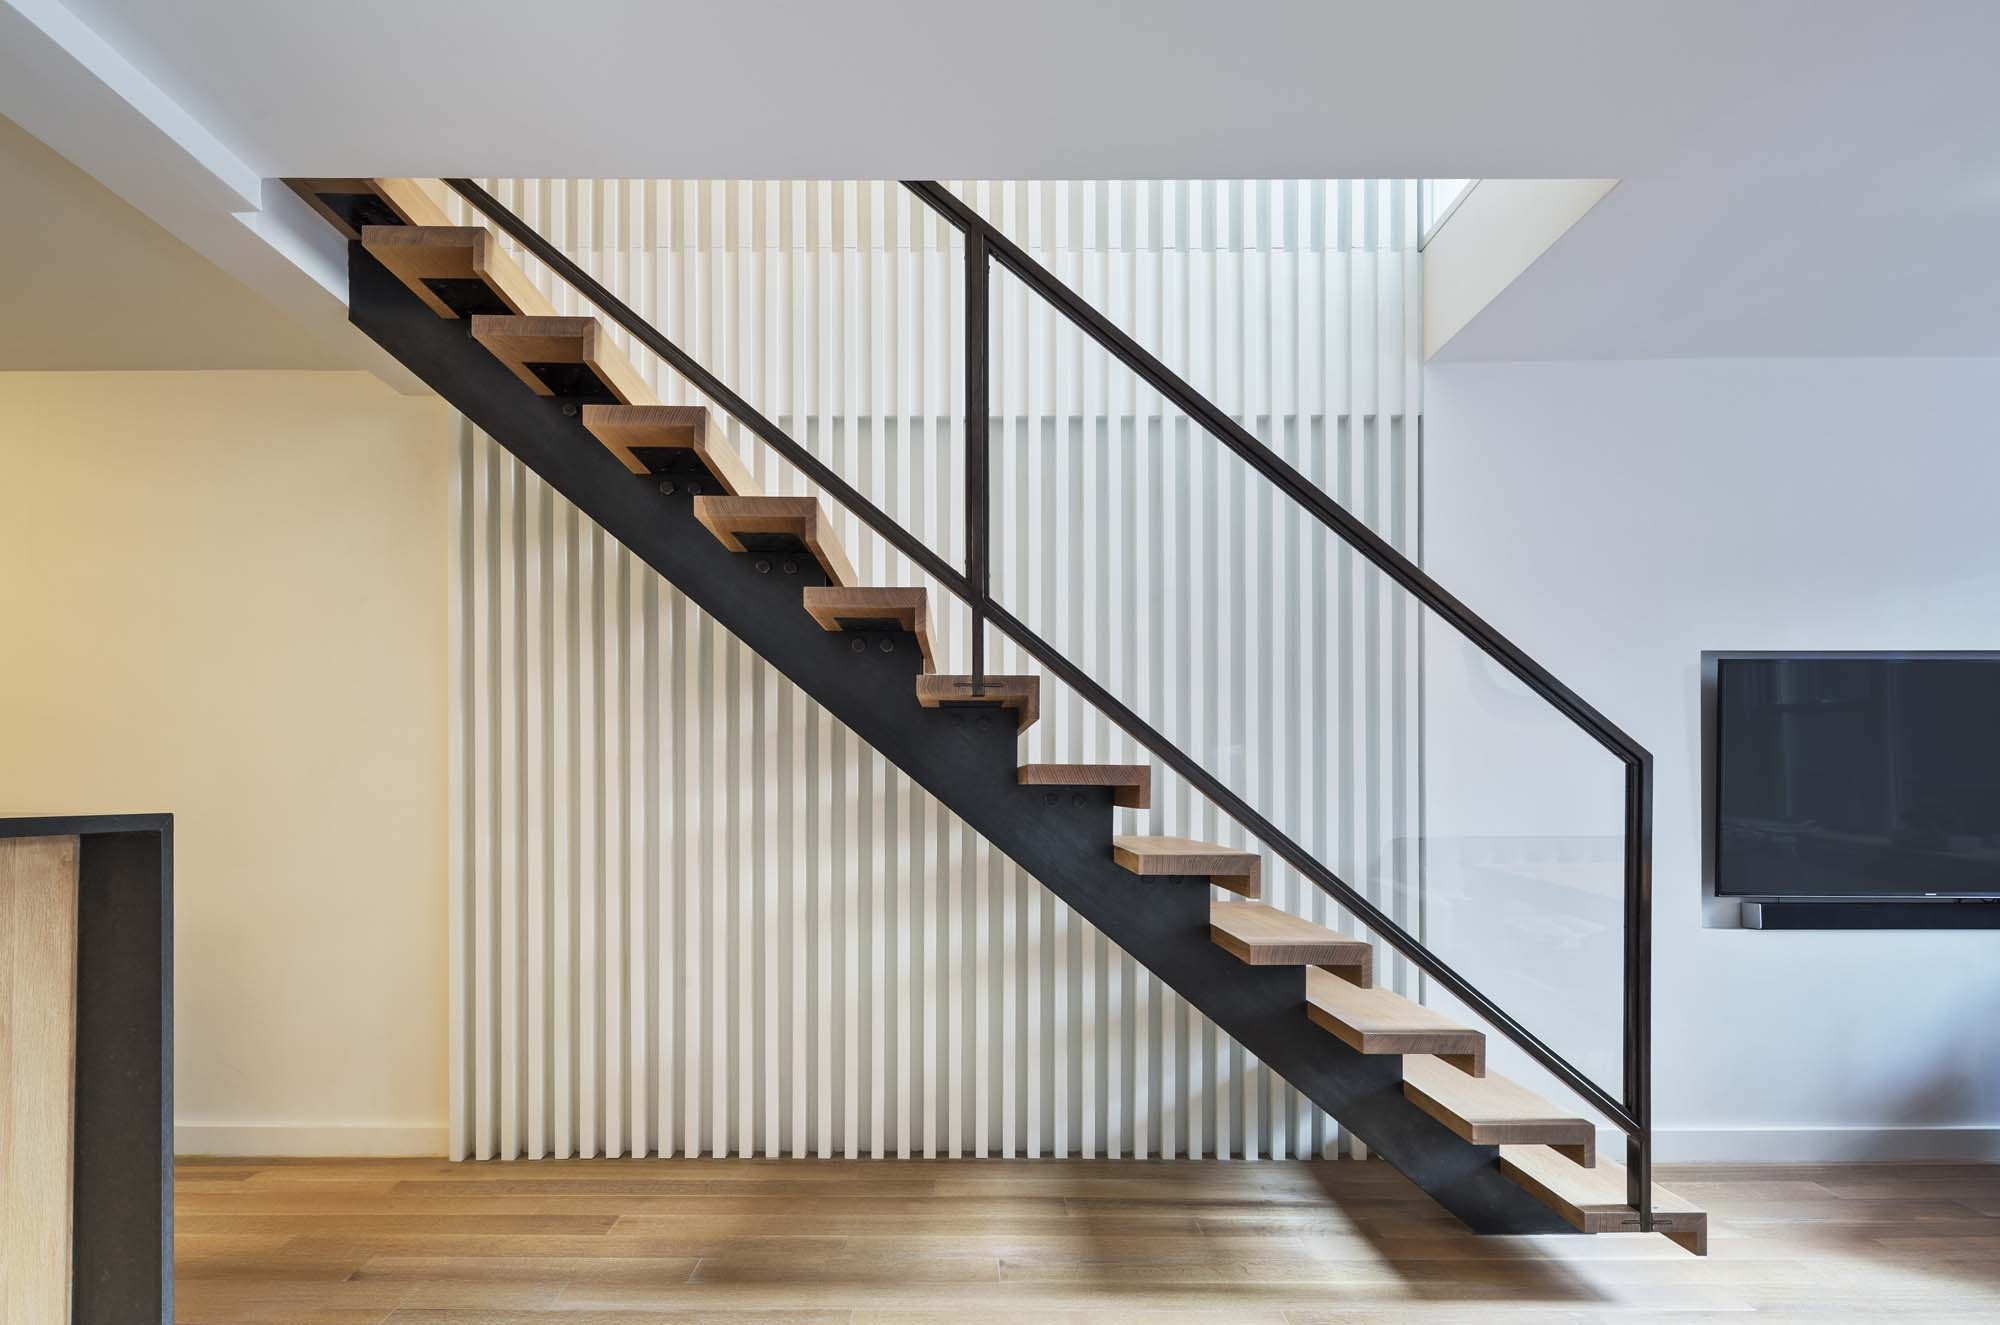 Spiral Staircase Alternatives For Your Nyc Duplex Renovation   Loft With Spiral Staircase   Small   Contemporary   Addition   Timber   New